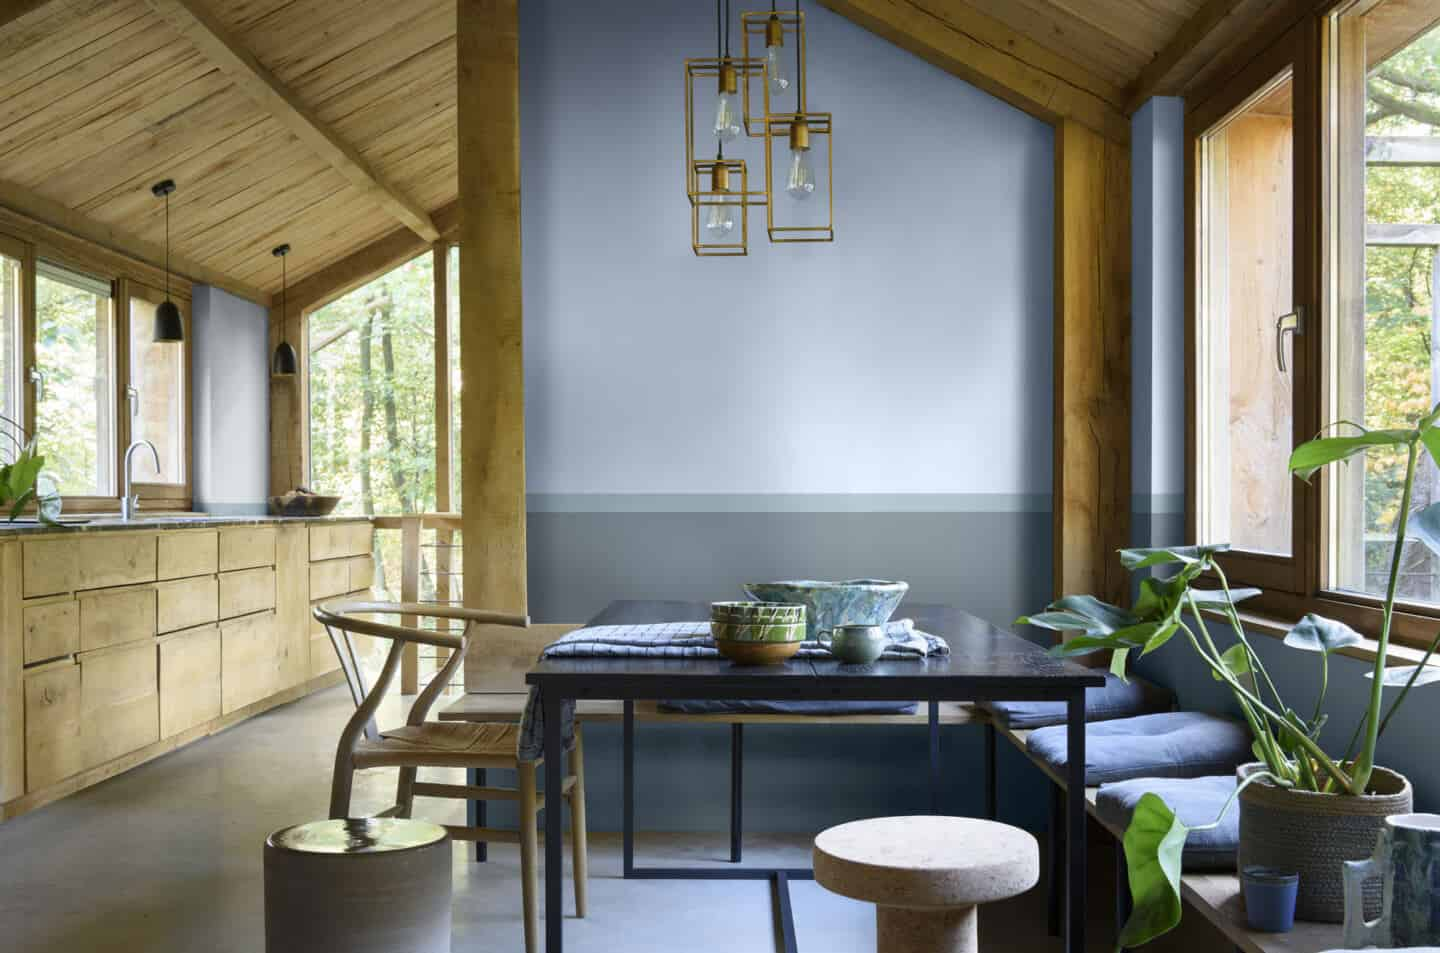 A rustic wooden kitchen and dining area with walls panted in Dulux Colour of the Year 2022 Bright Skies